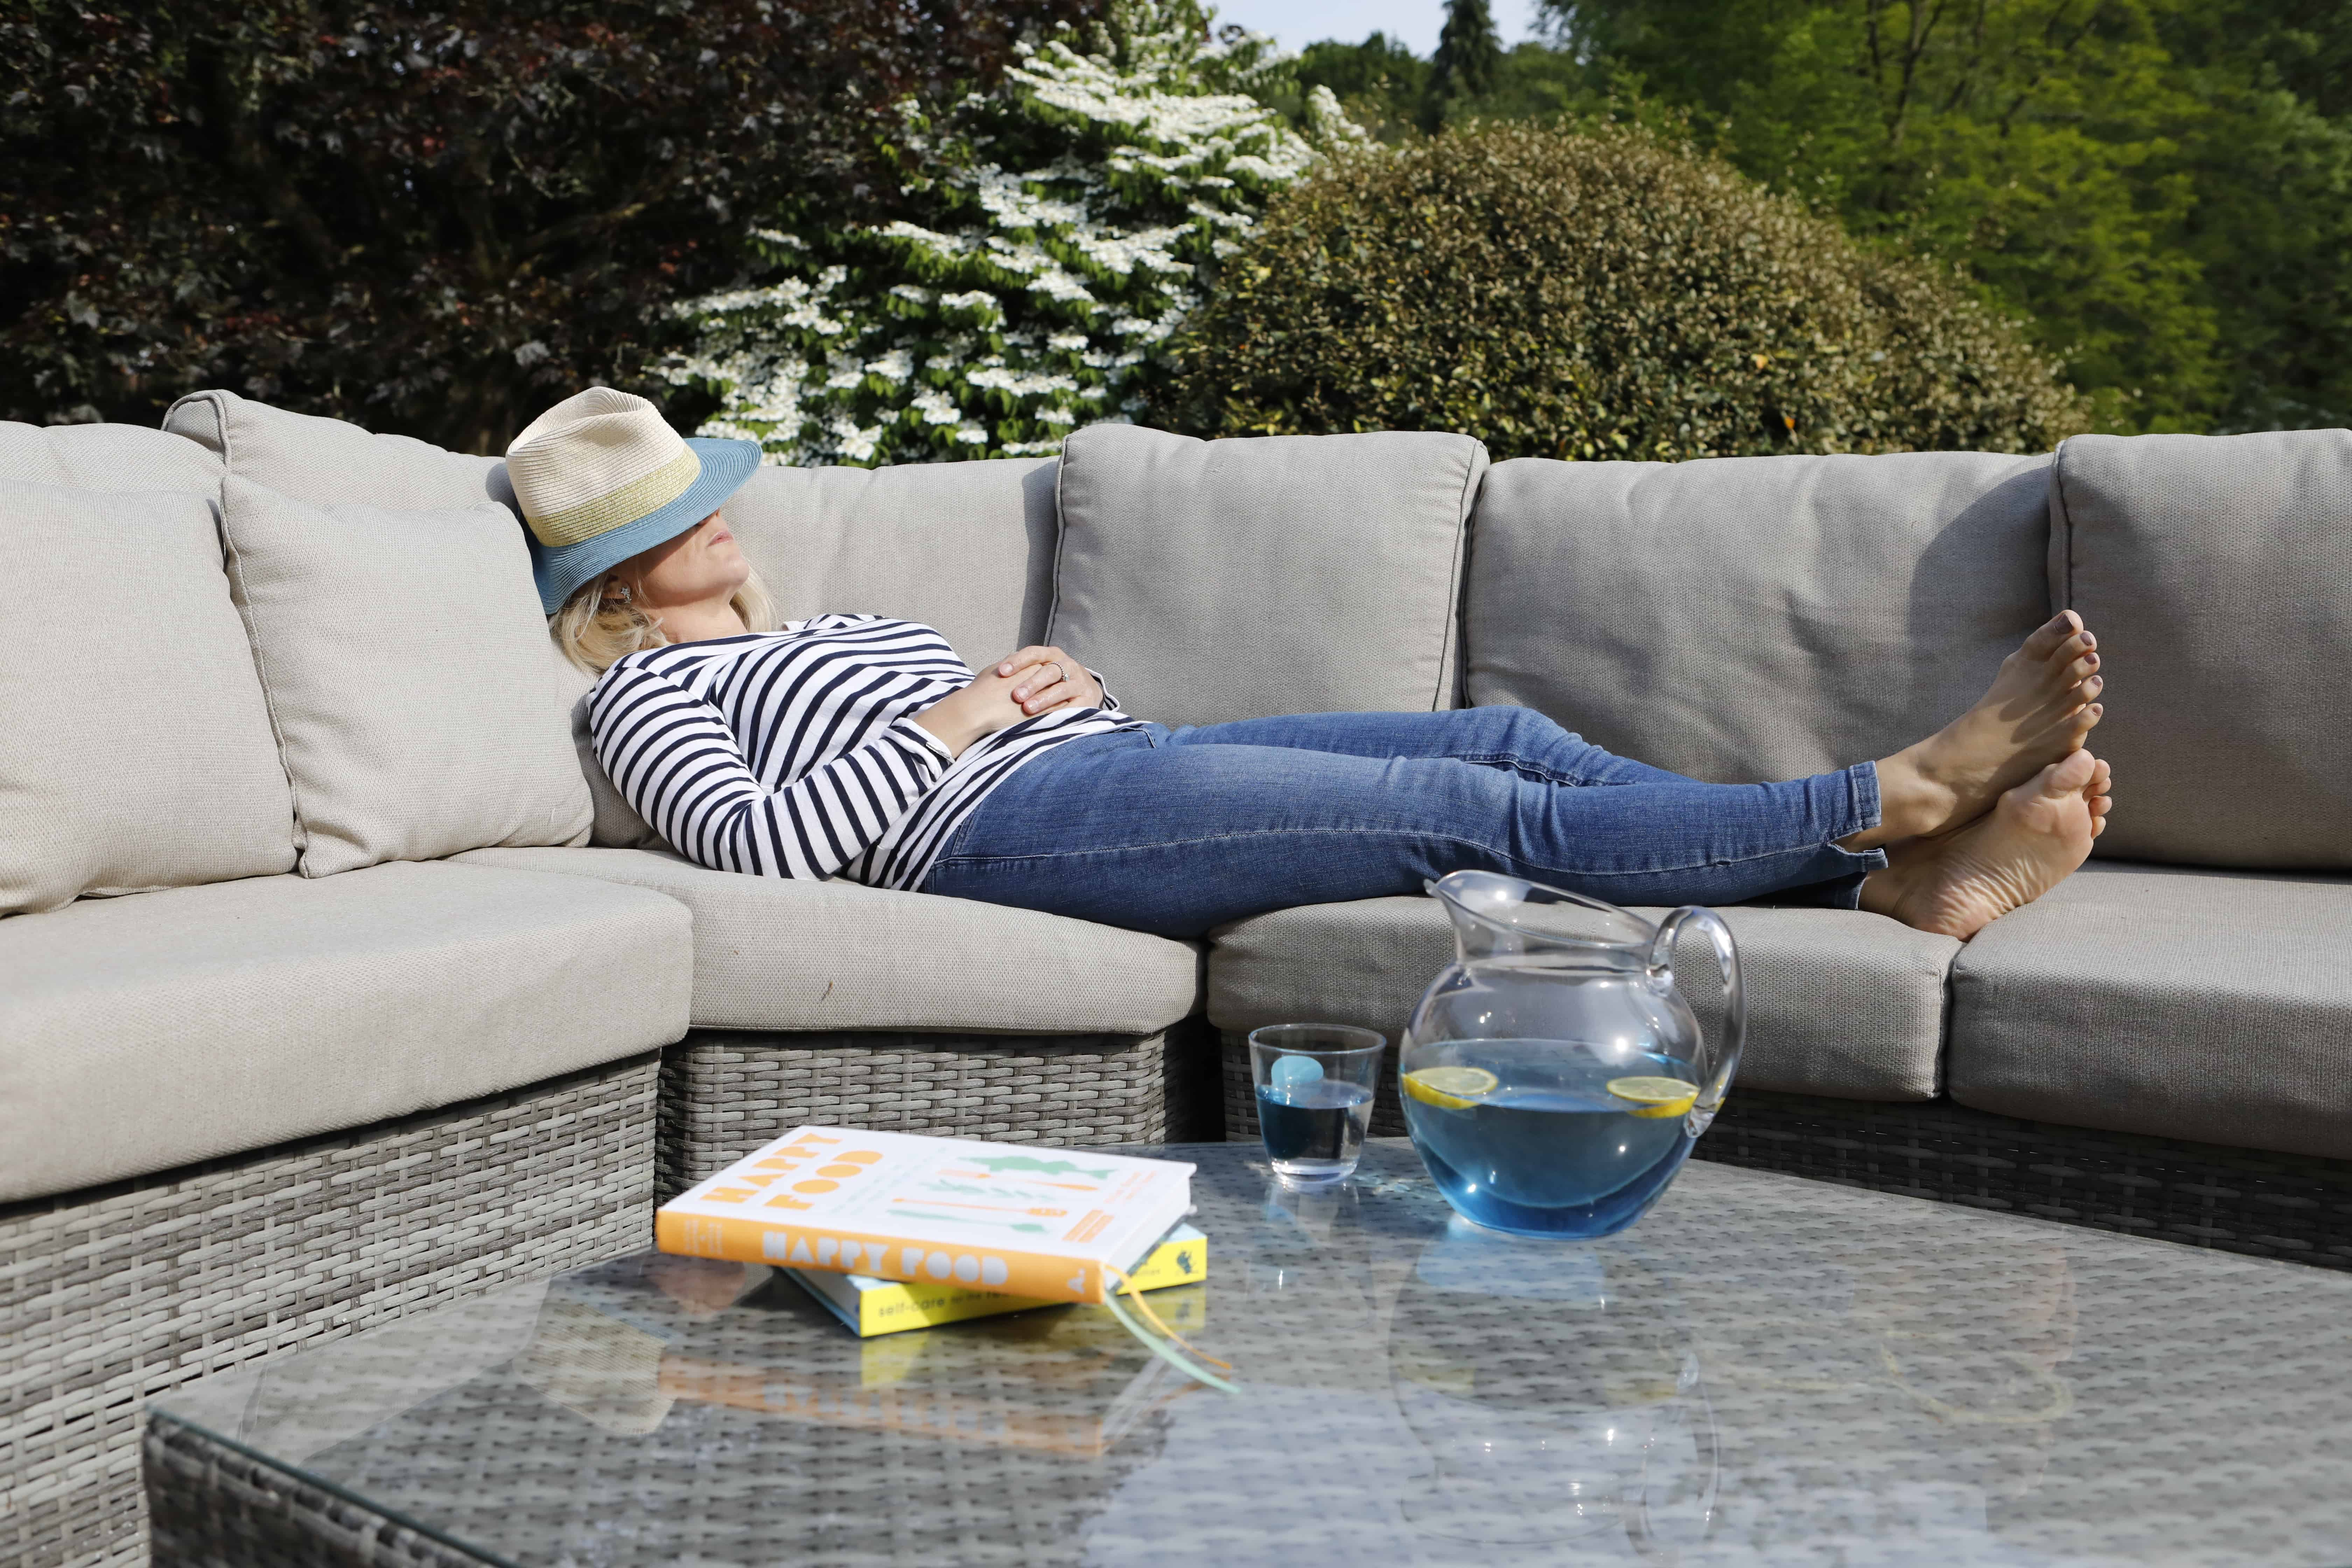 Kate asleep with hat on face 2 with water jug